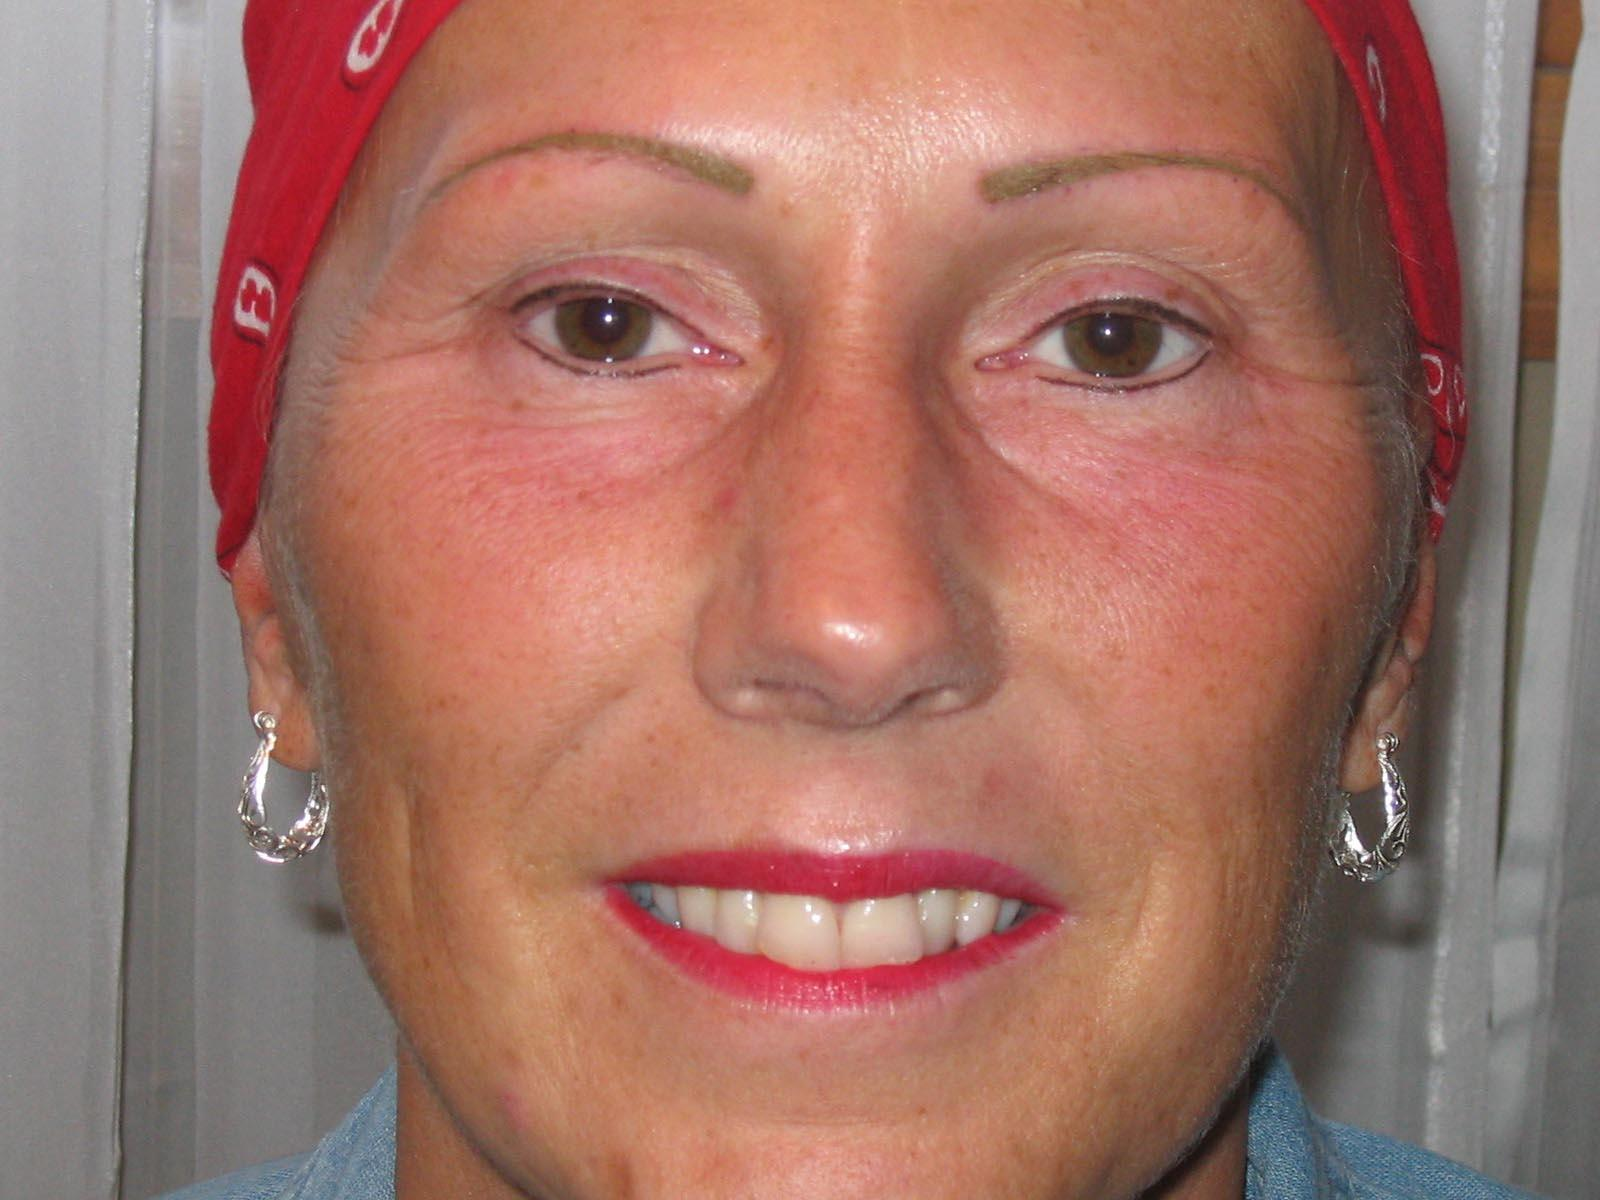 FACES by Marcia Renner BS, LPN, FAAM, CPCP Permanent Cosmetic Makeup image 8